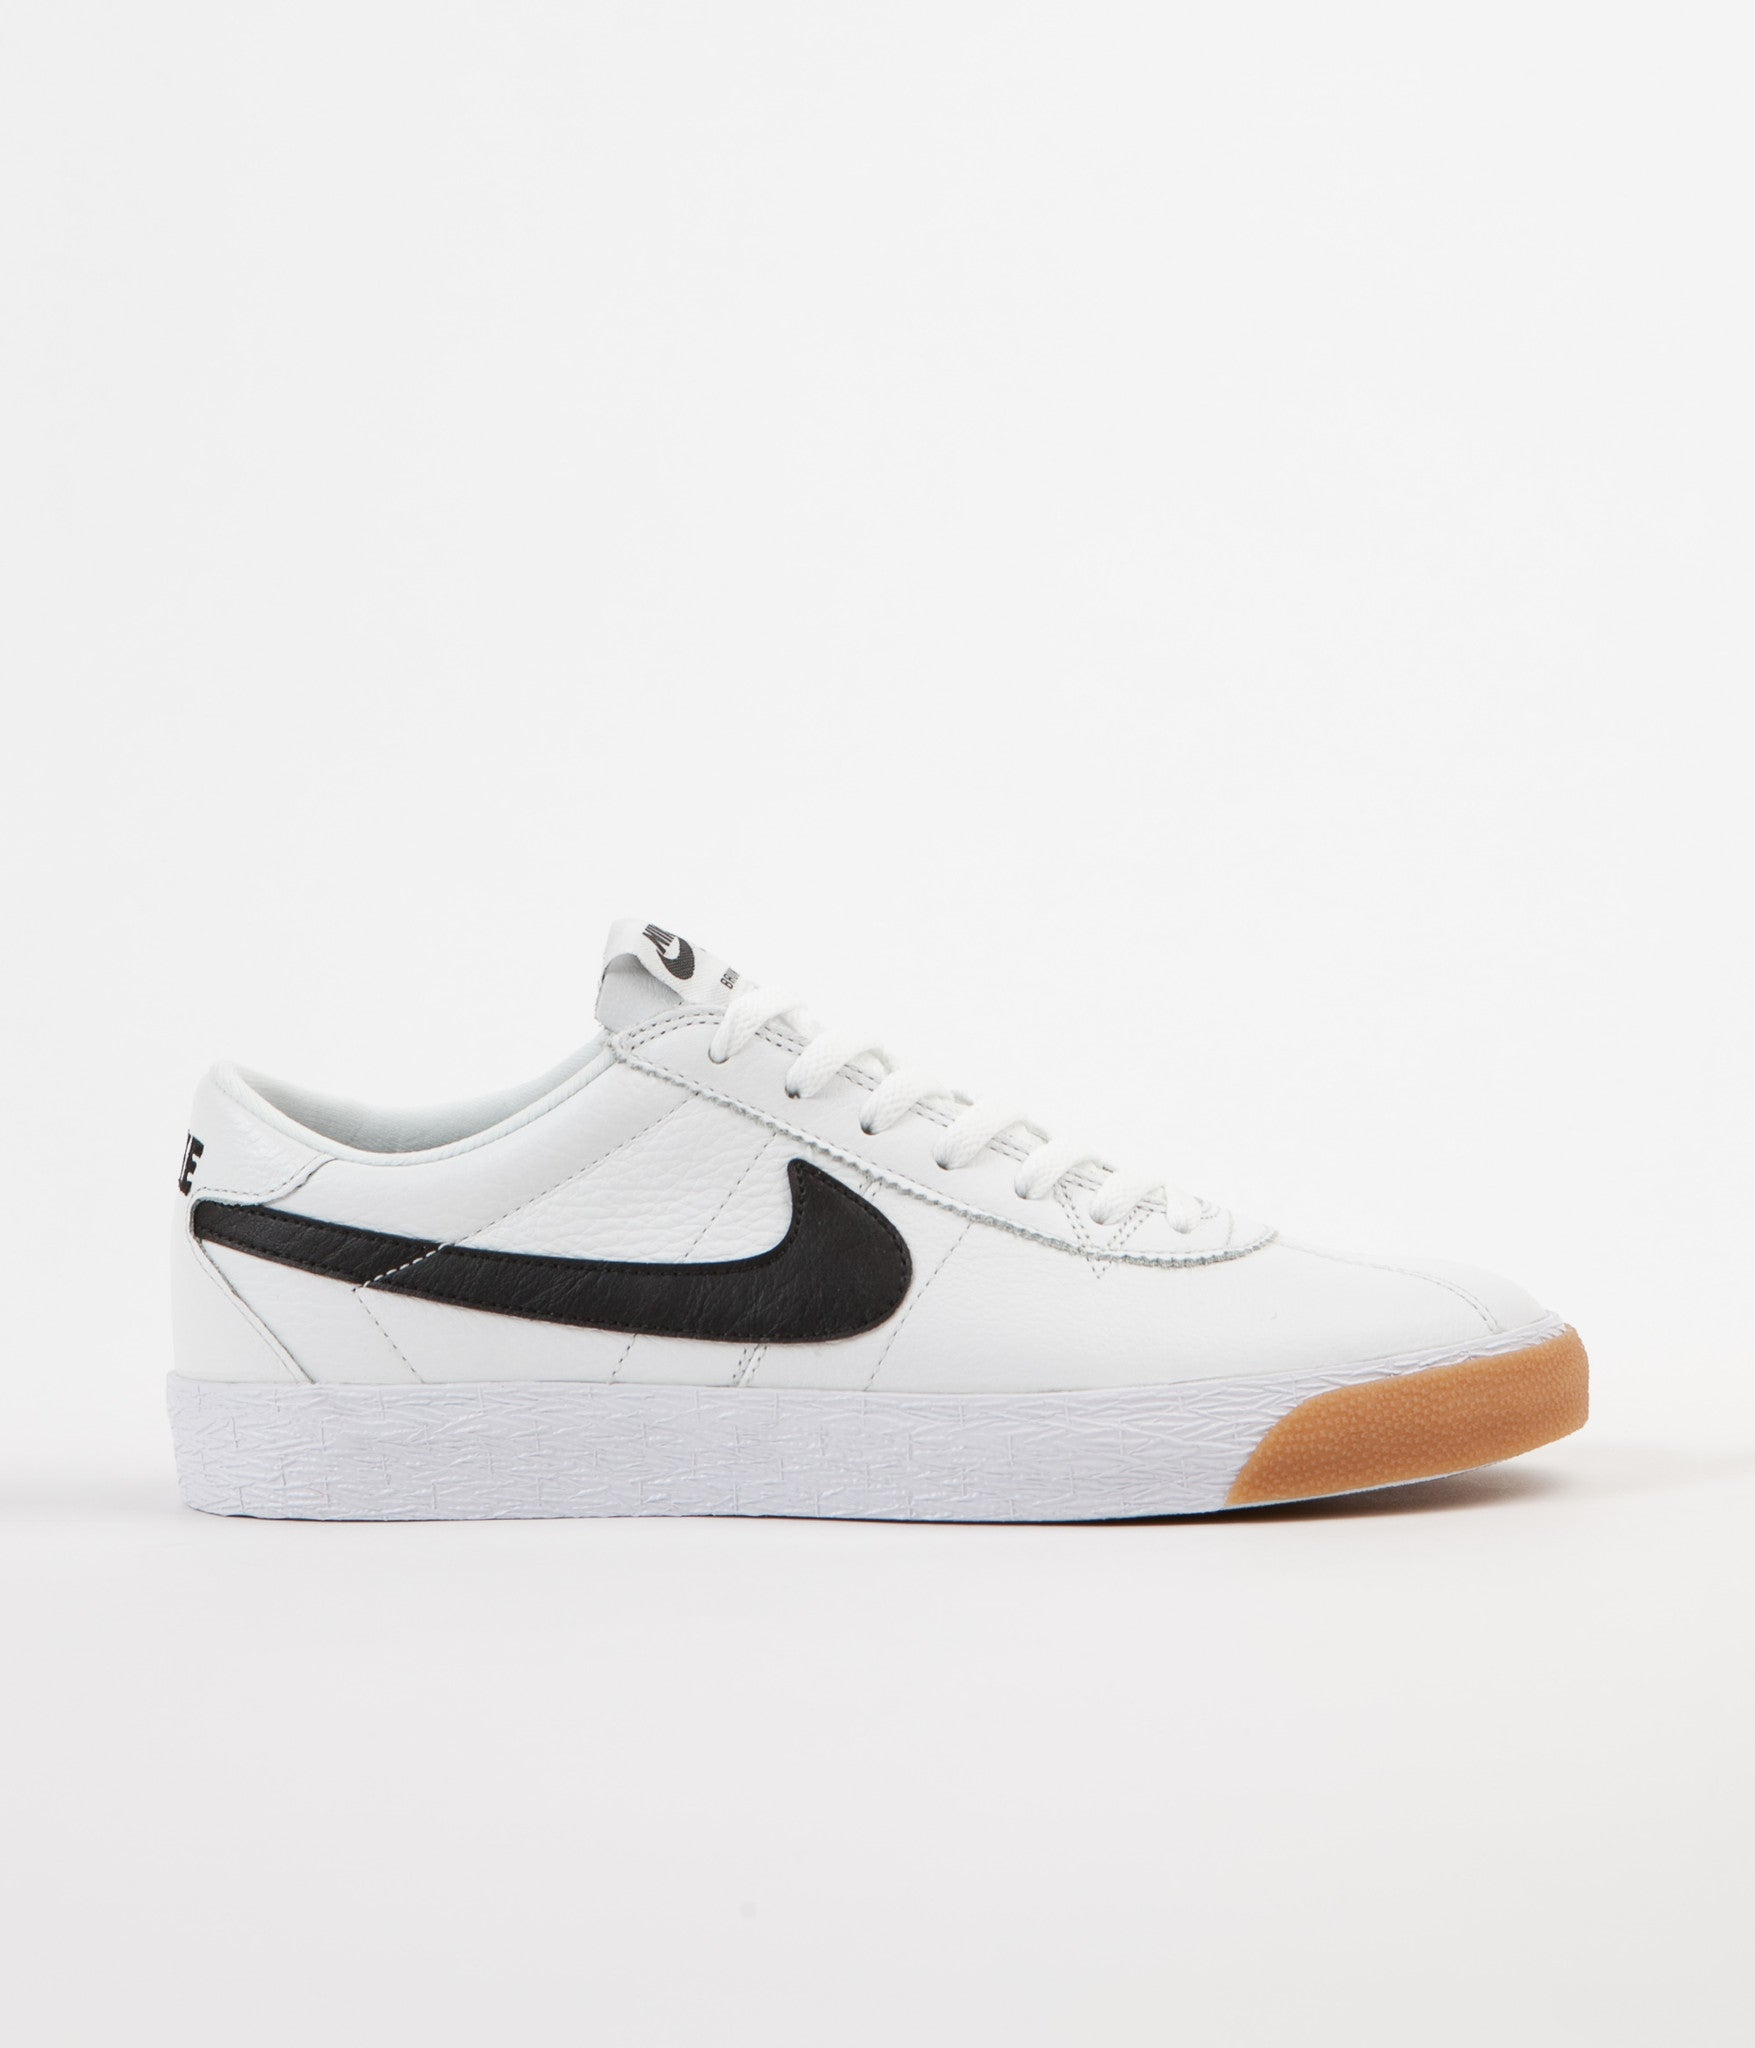 new arrival 6b856 9f307 Nike SB Bruin Premium SE Shoes - Summit White  Black - White